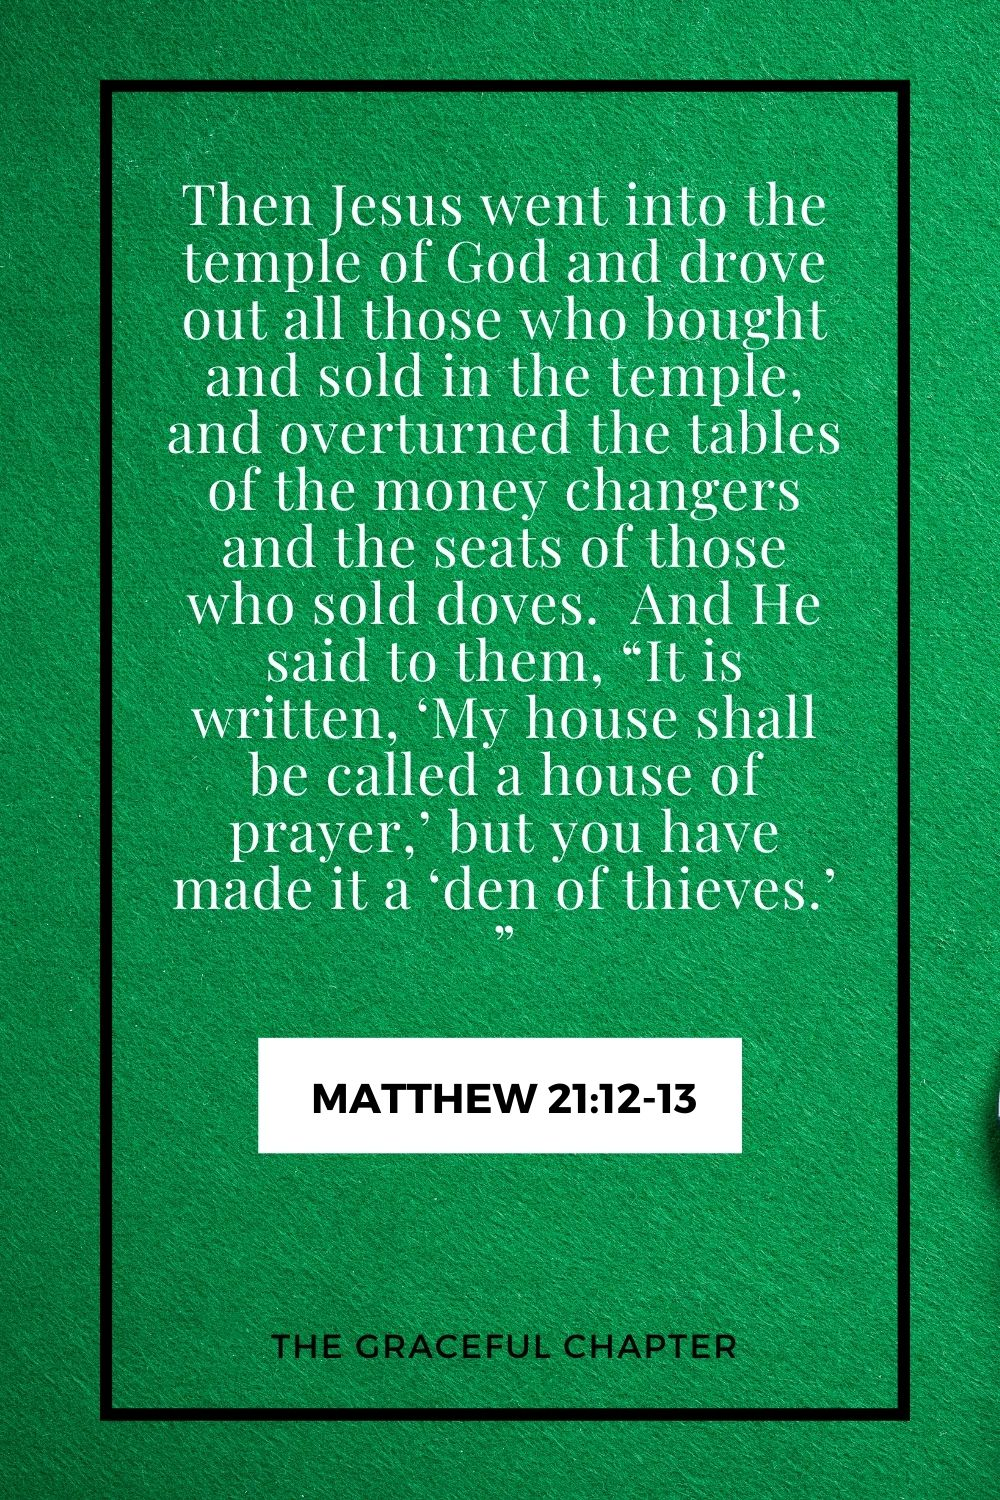 """Then Jesus went into the temple of God and drove out all those who bought and sold in the temple, and overturned the tables of the money changers and the seats of those who sold doves.  And He said to them, """"It is written, 'My house shall be called a house of prayer,' but you have made it a 'den of thieves.' """" Matthew 21:12-13"""